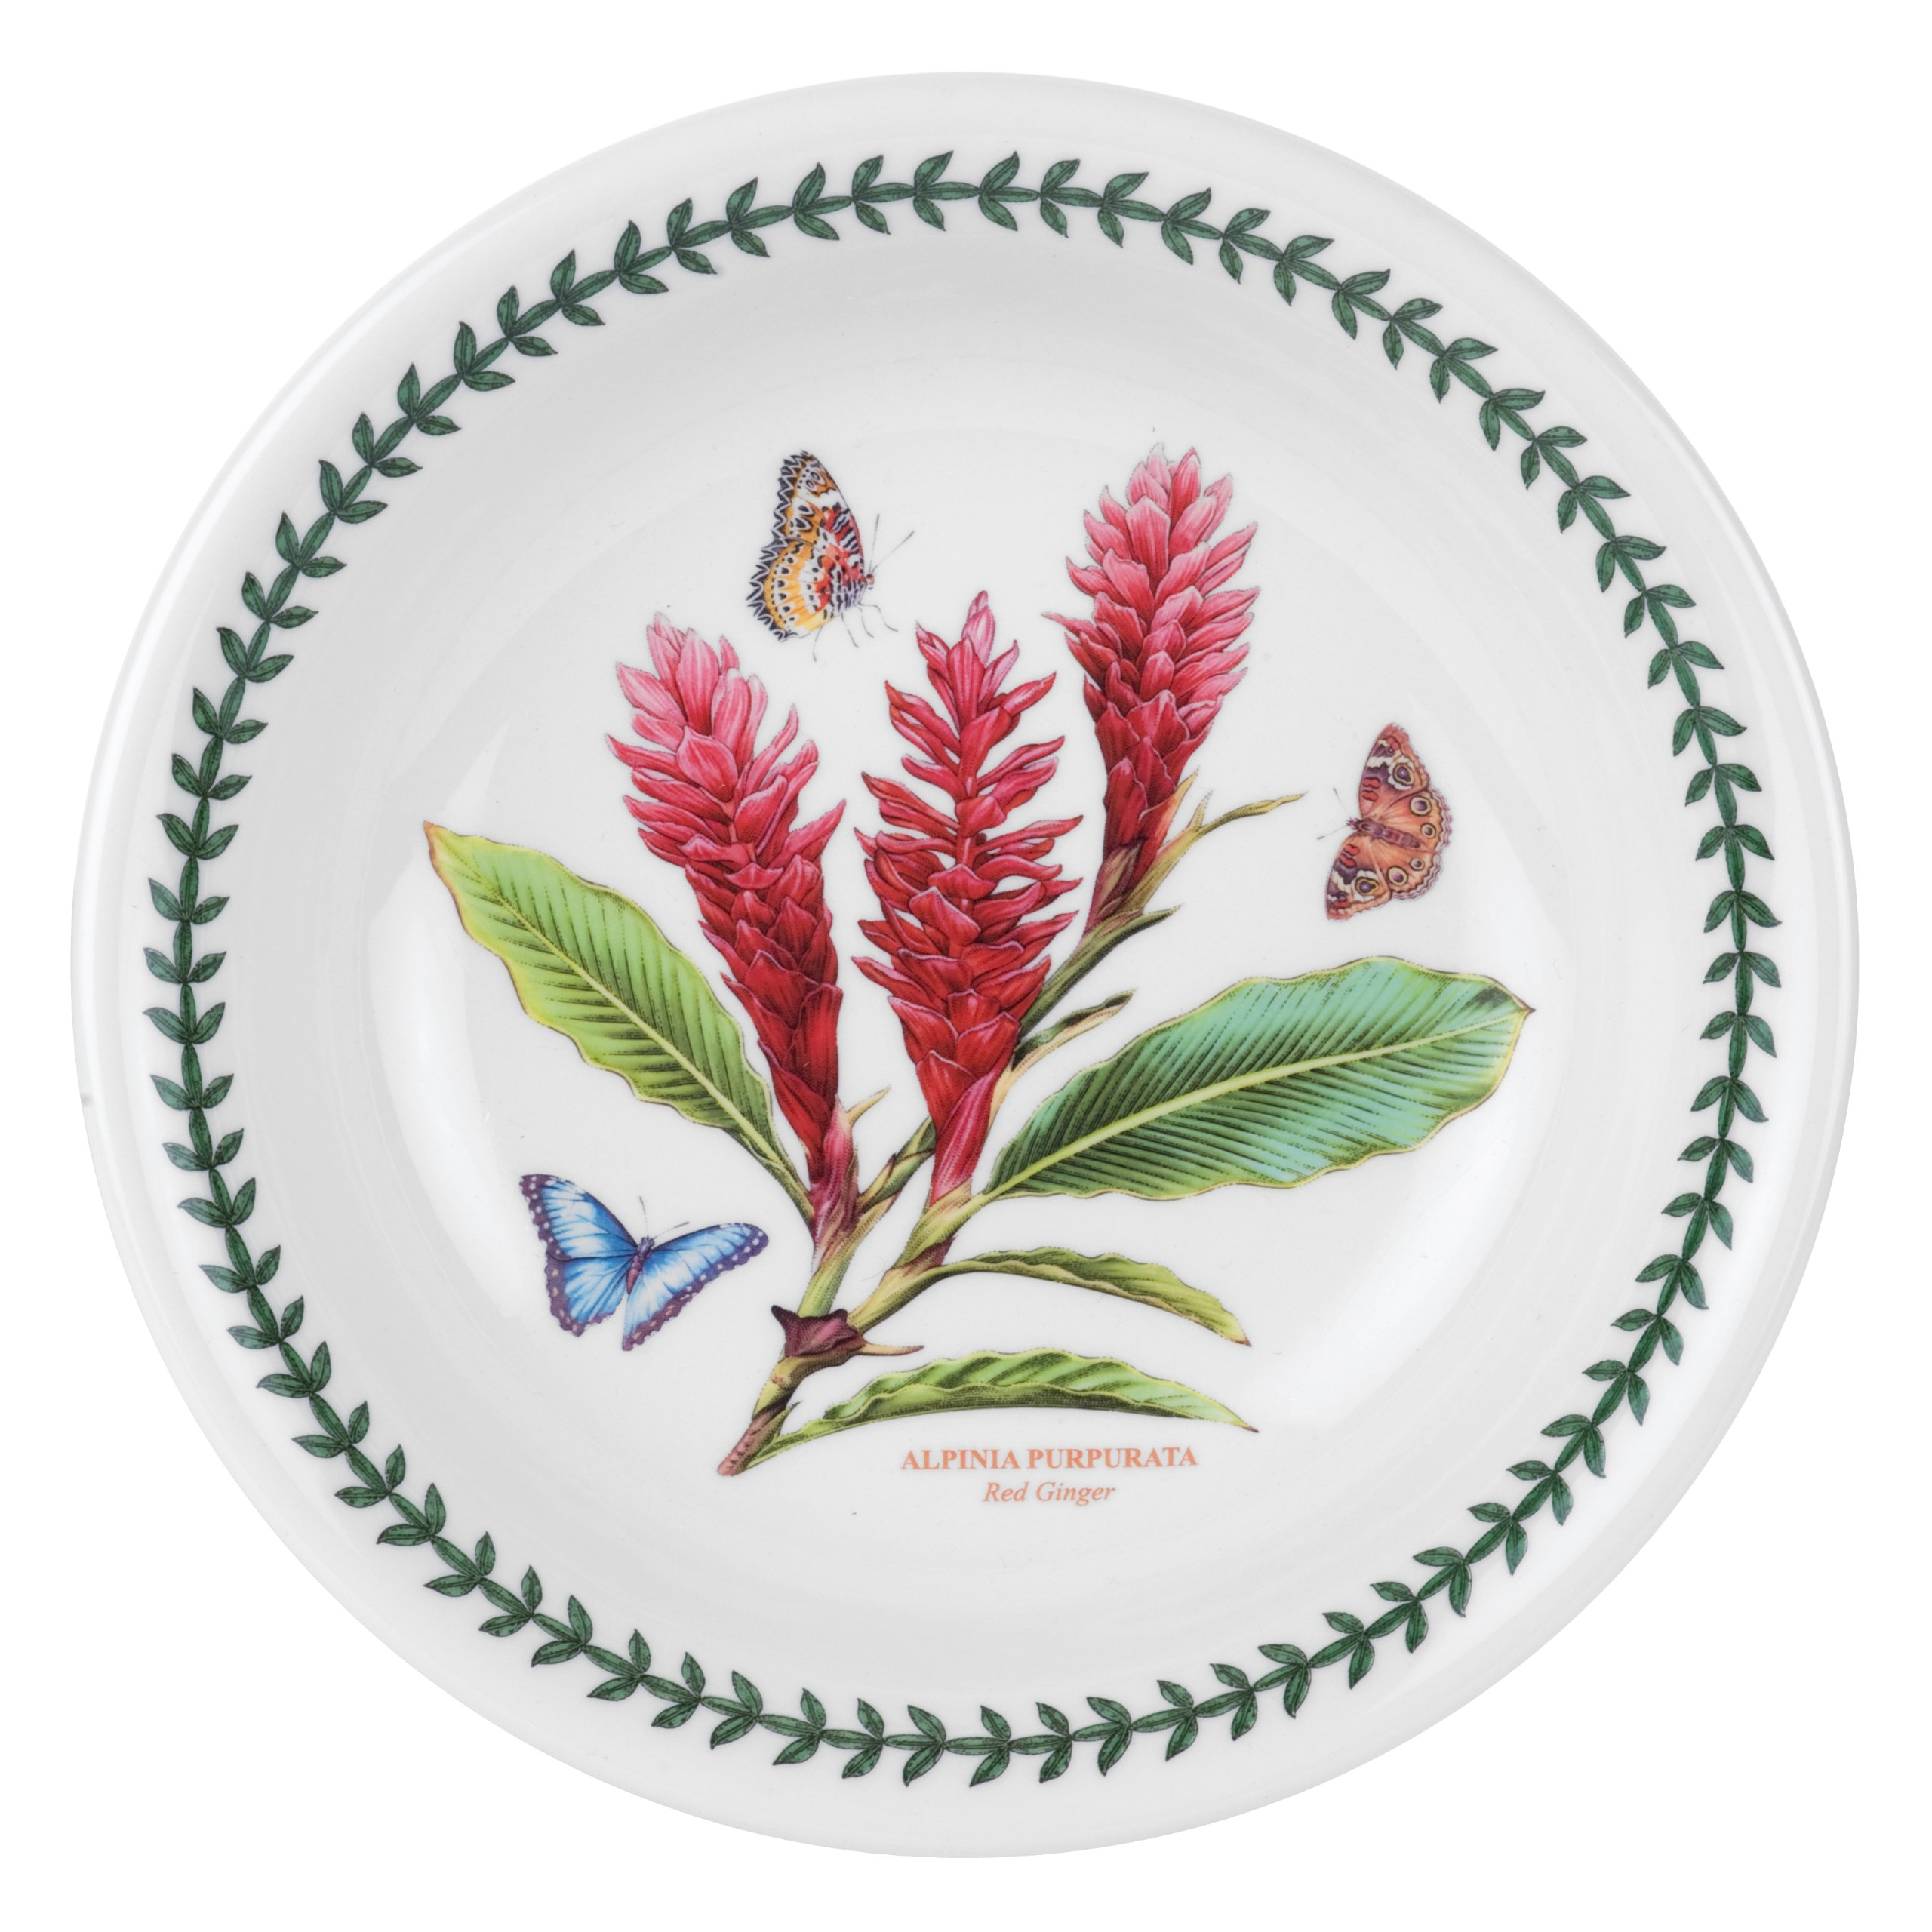 Portmeirion Exotic Botanic Garden Pasta Bowl, Set with 6 Assorted Motifs by Portmeirion